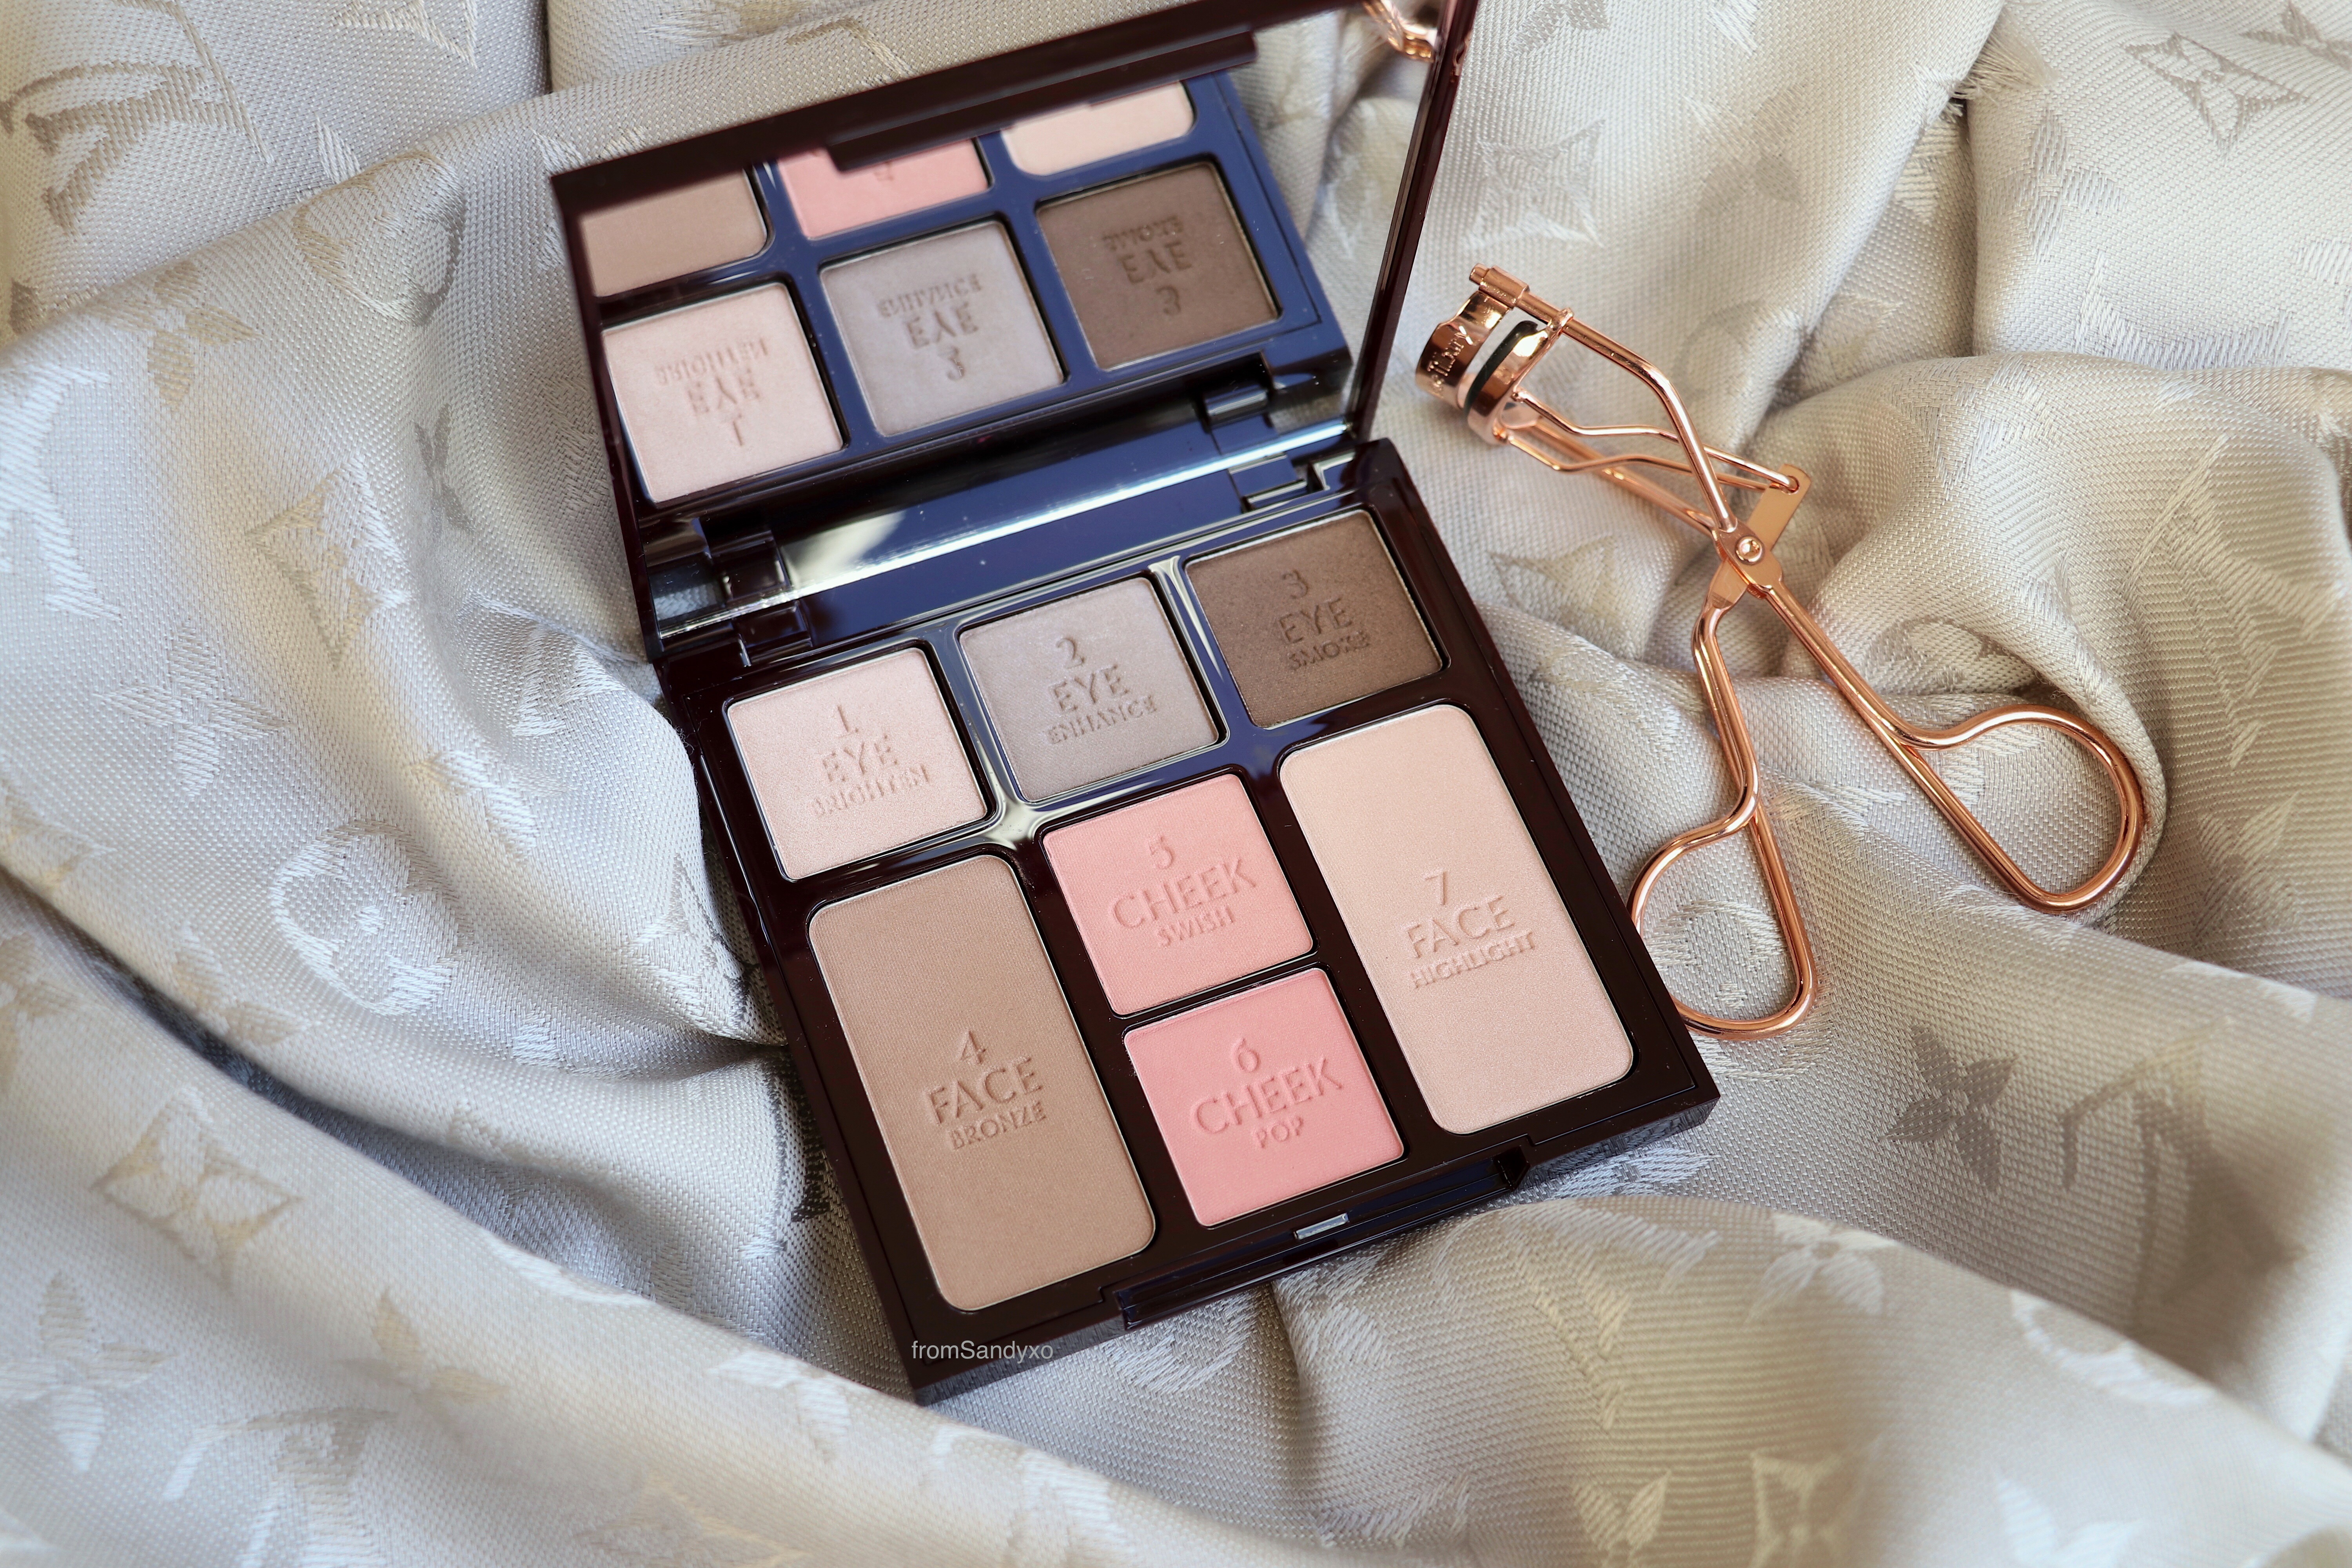 c49a572268fc1 CHARLOTTE TILBURY INSTANT LOOK IN A PALETTE Seductive Beauty Review -  fromSandyxo